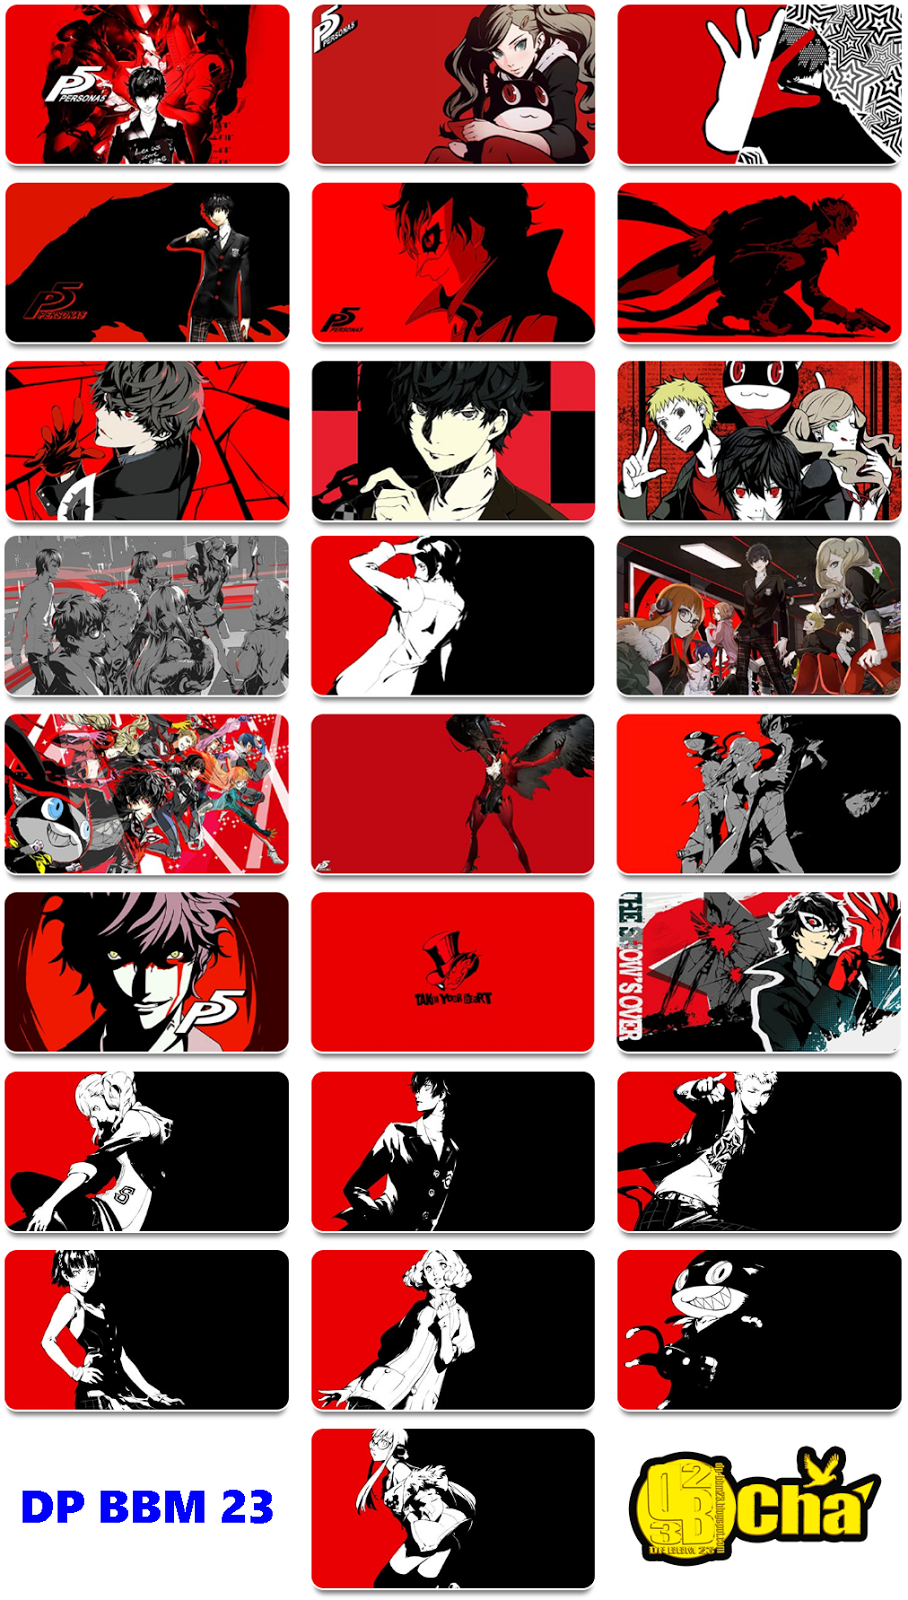 Download Theme Pack Persona 5 For Windows 10